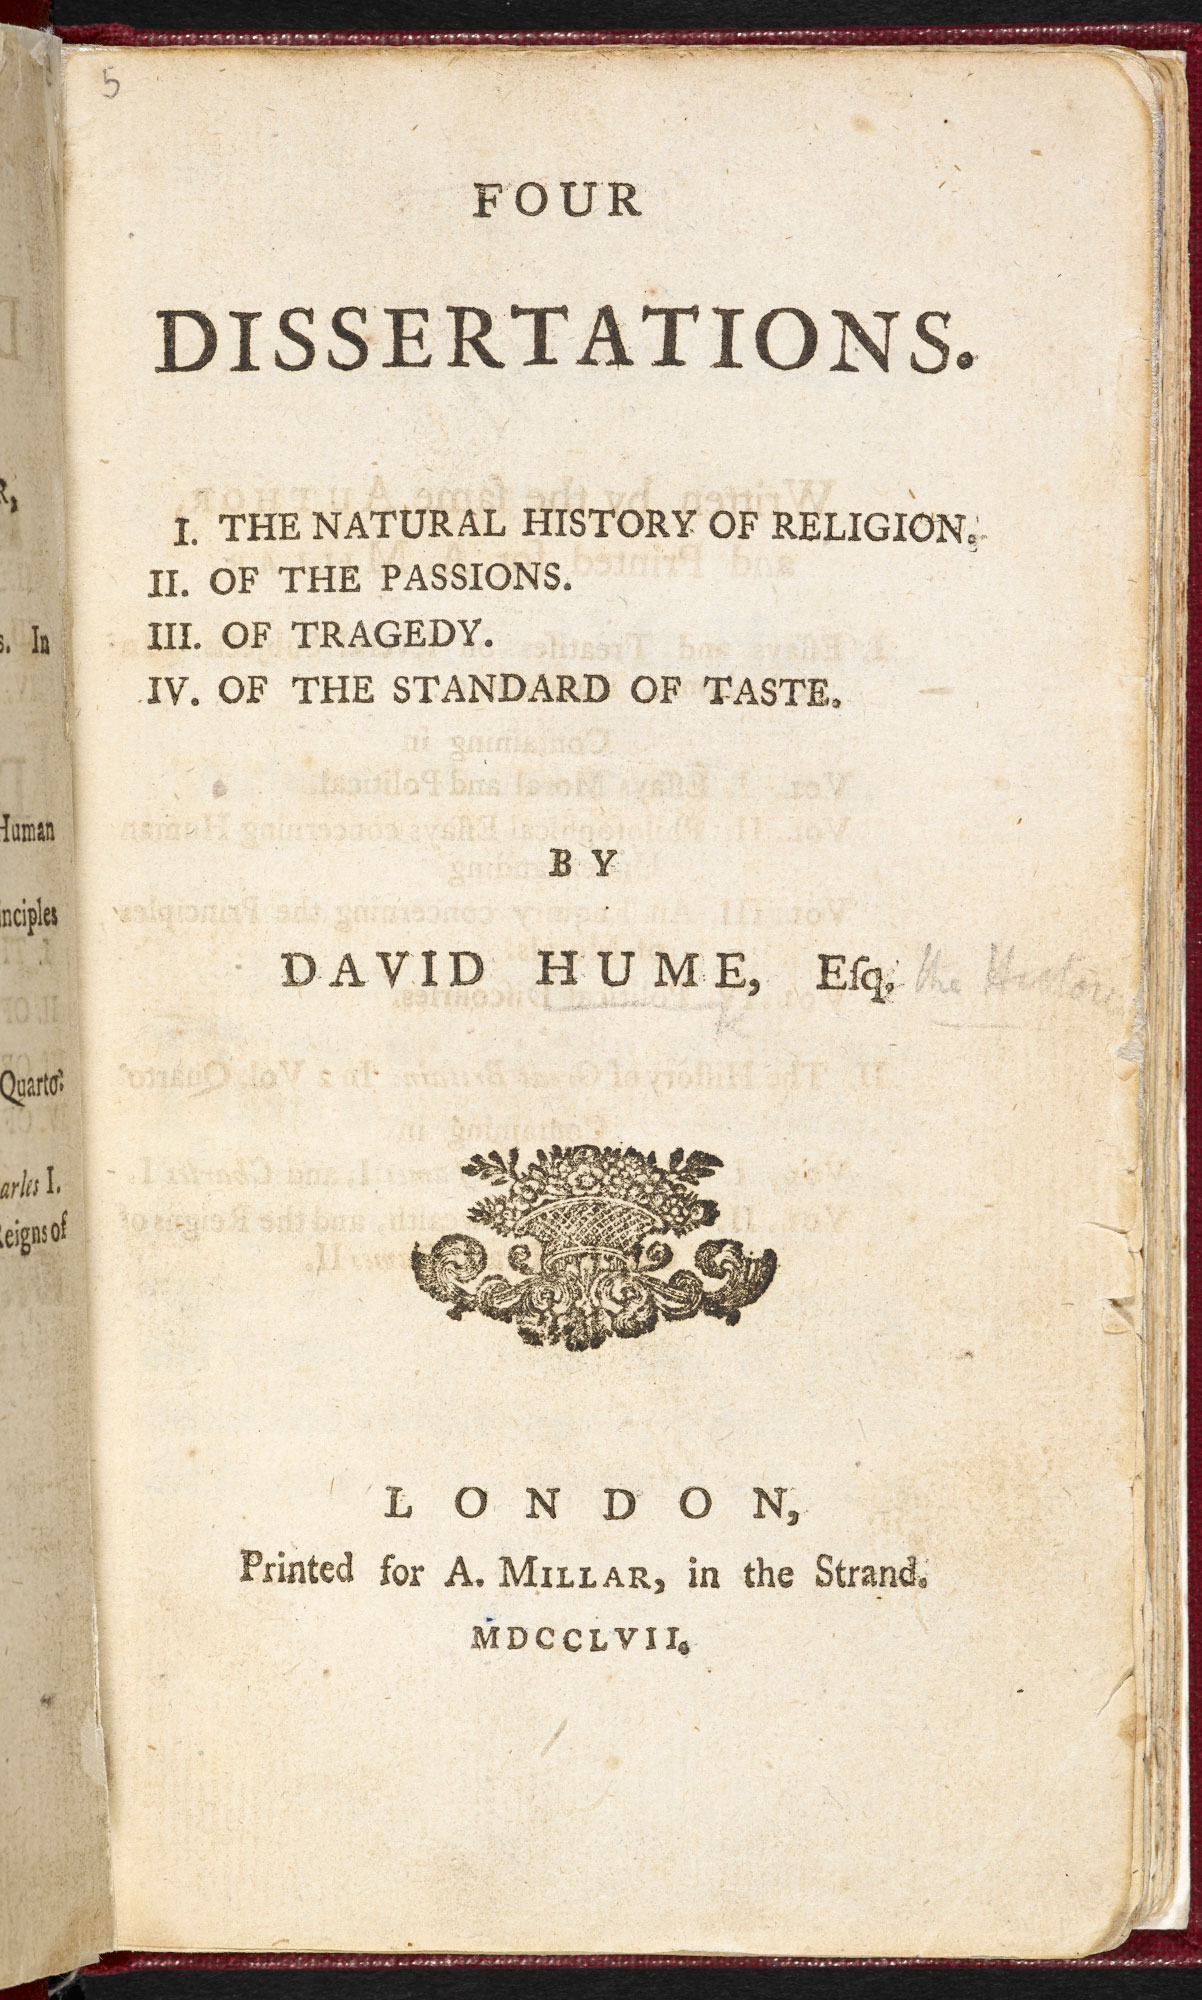 Four dissertations by enlightenment philosopher David Hume